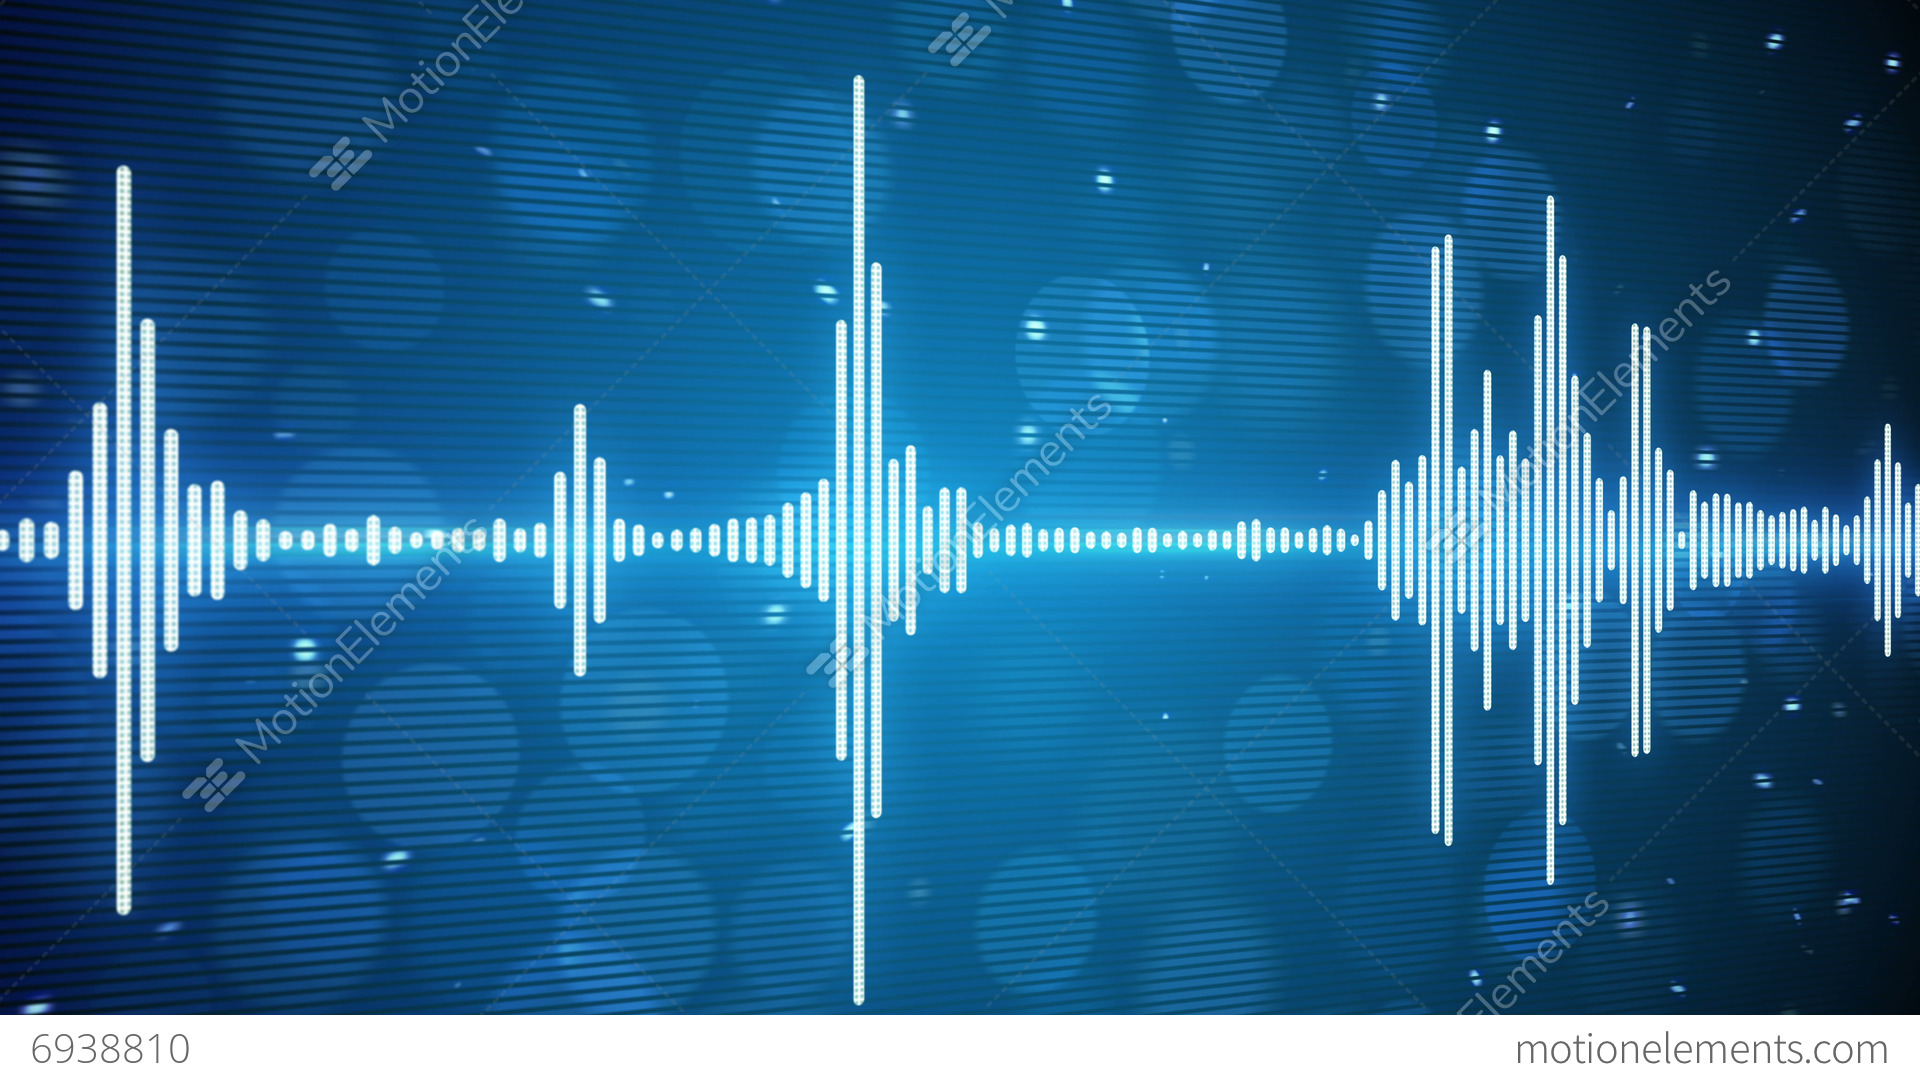 Must see Wallpaper Blue Music - me6938810-music-equalizer-seamless-loop-background-4k-4096x2304-a0120  You Should Have_75904.jpg